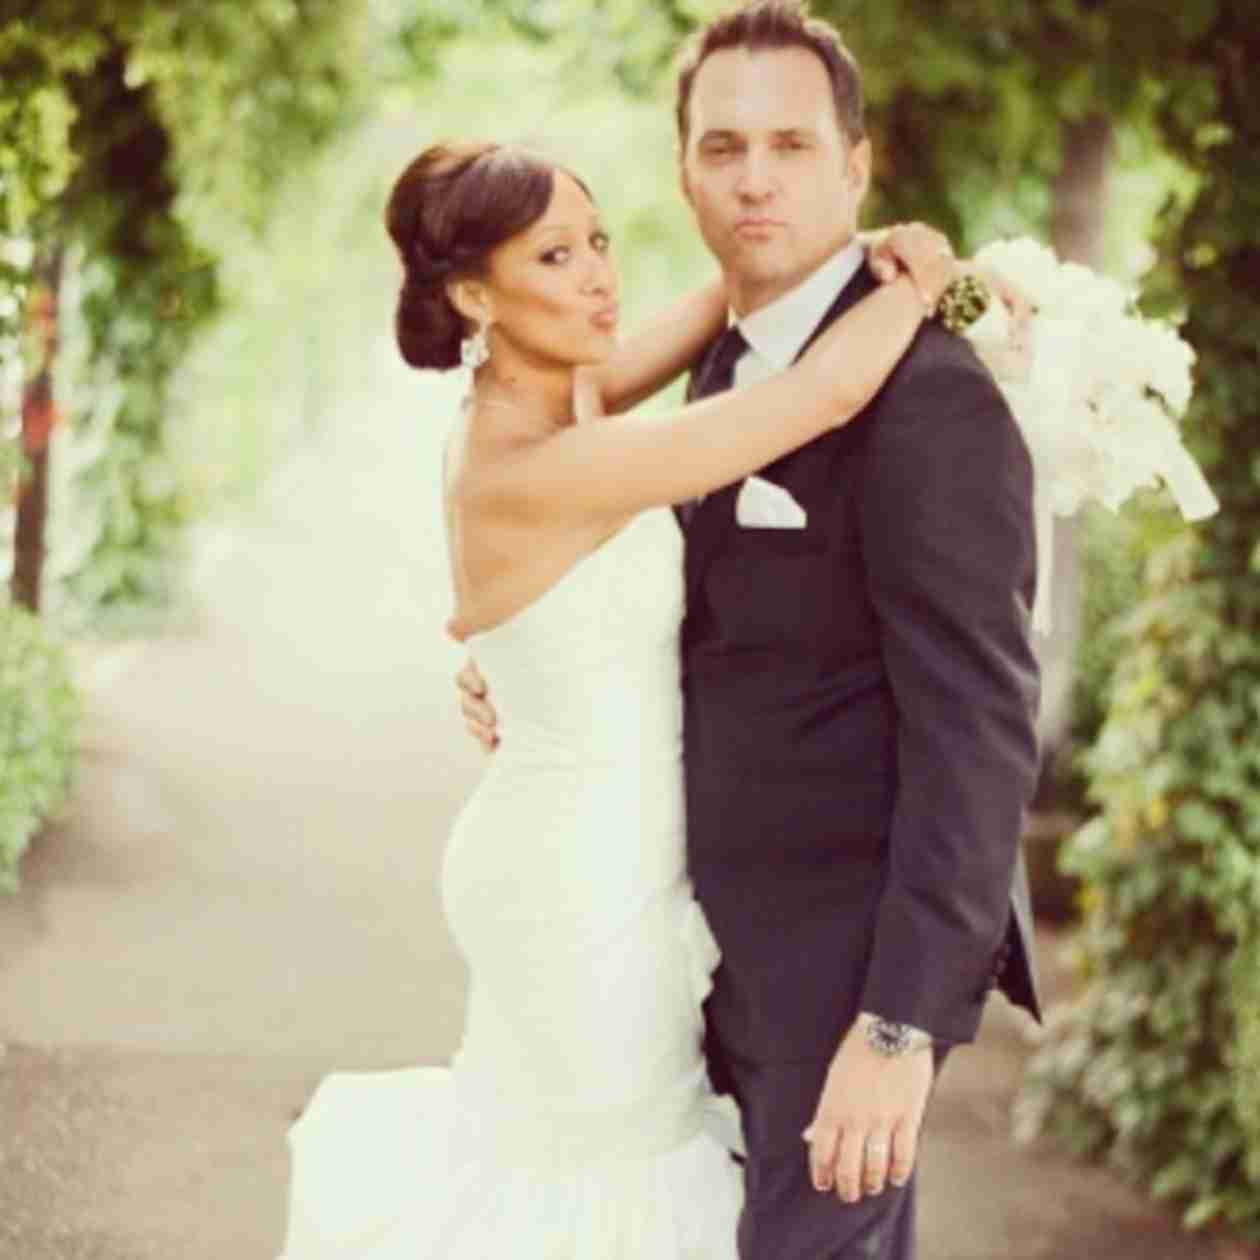 Tamera Mowry and Husband Adam Housley Celebrate 3-Year Anniversary! (PHOTOS)